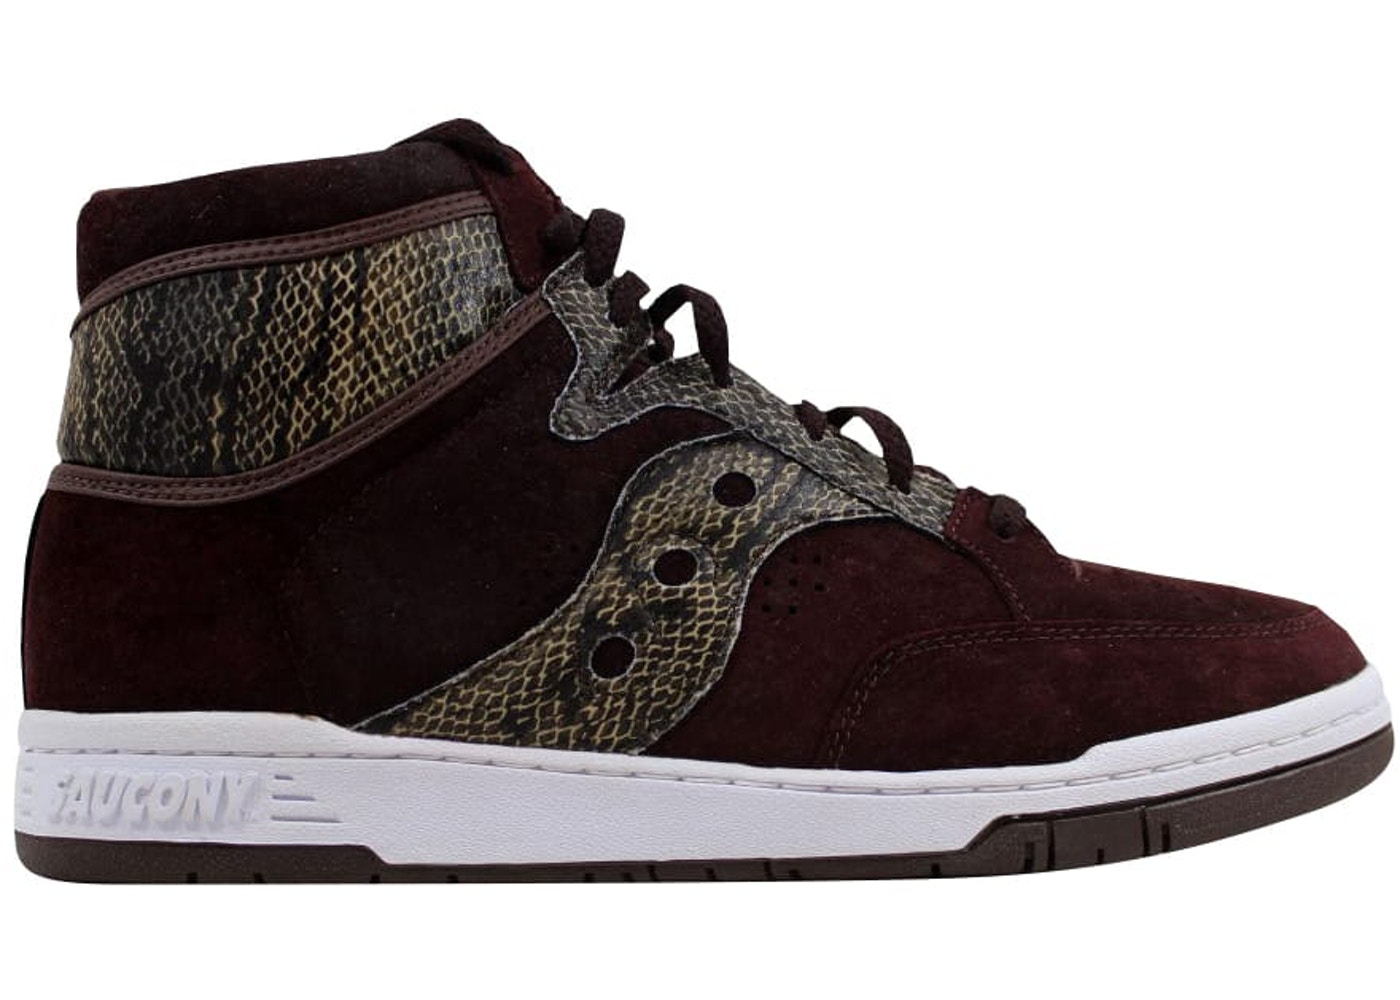 new arrival 3f0cb 15369 Saucony Hangtime Hi Packer Shoes - 70127-3